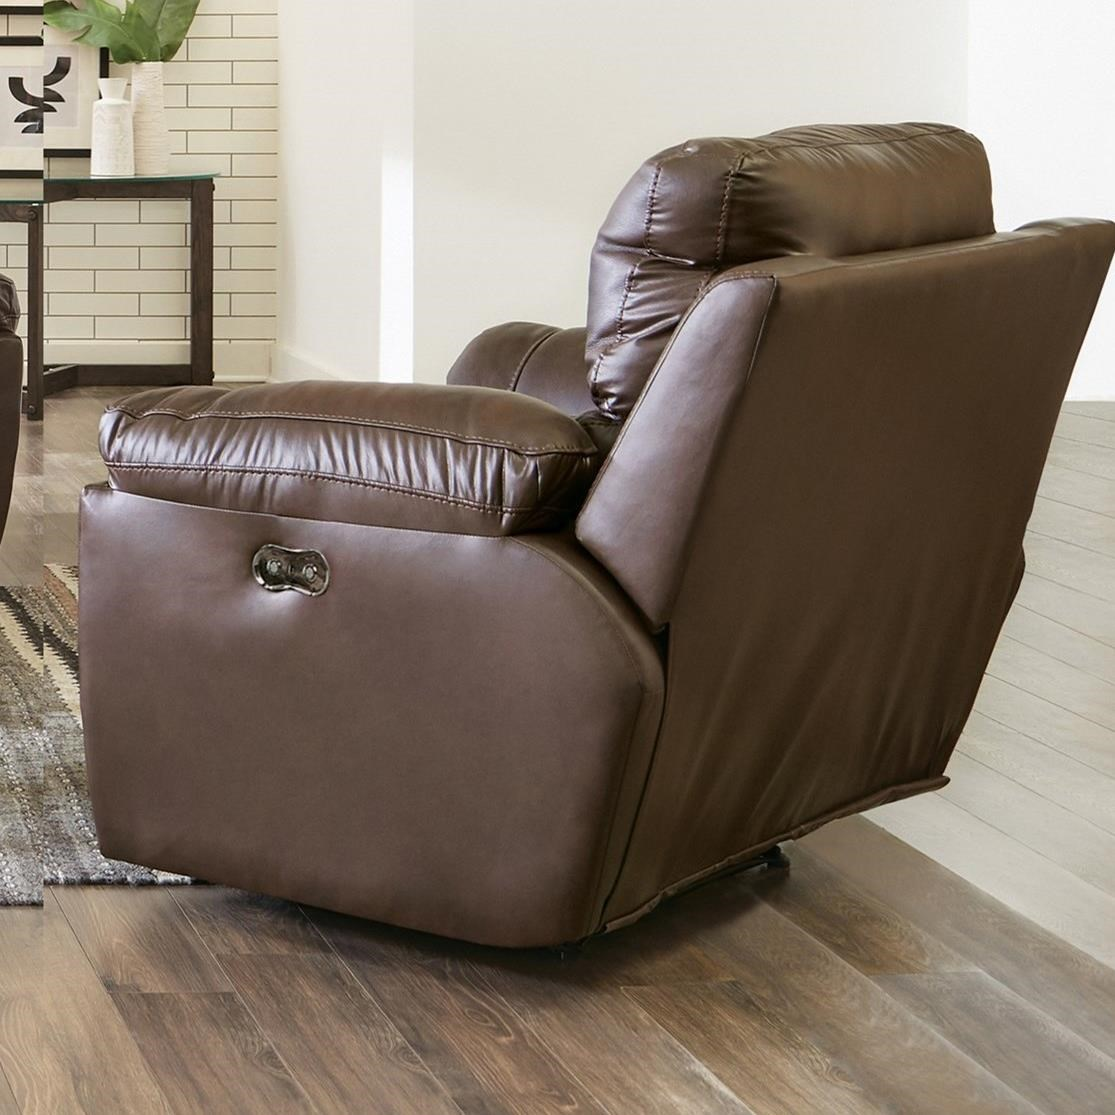 Sorrento Power Lay Flat Recliner by Catnapper at Lapeer Furniture & Mattress Center